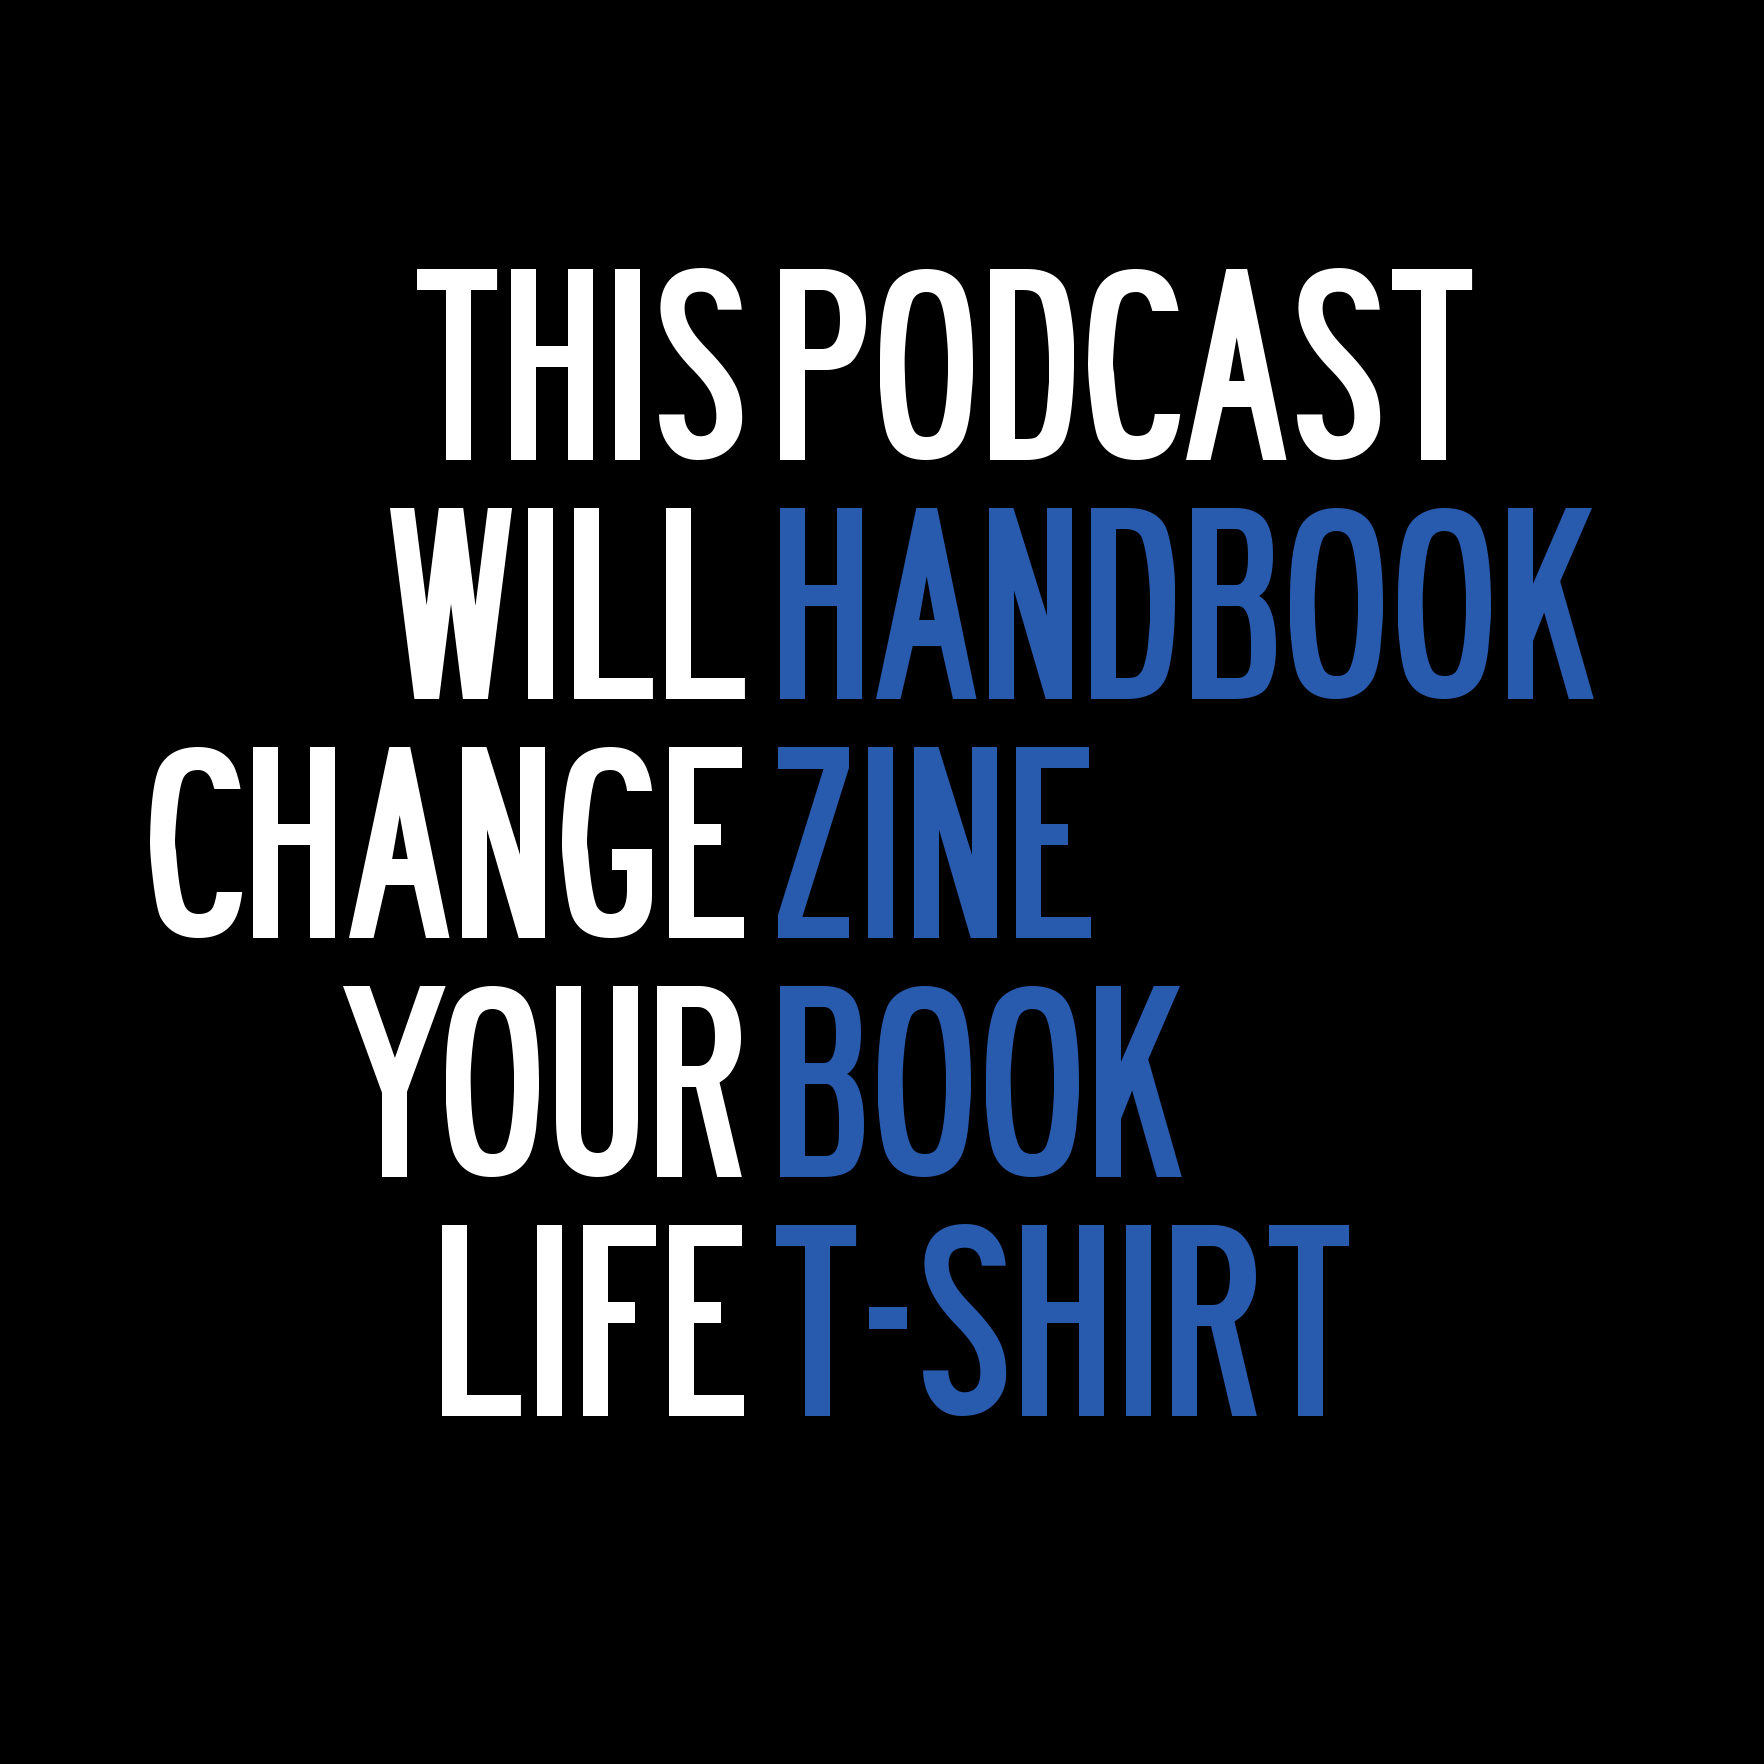 This Podcast Will Change Your Life.